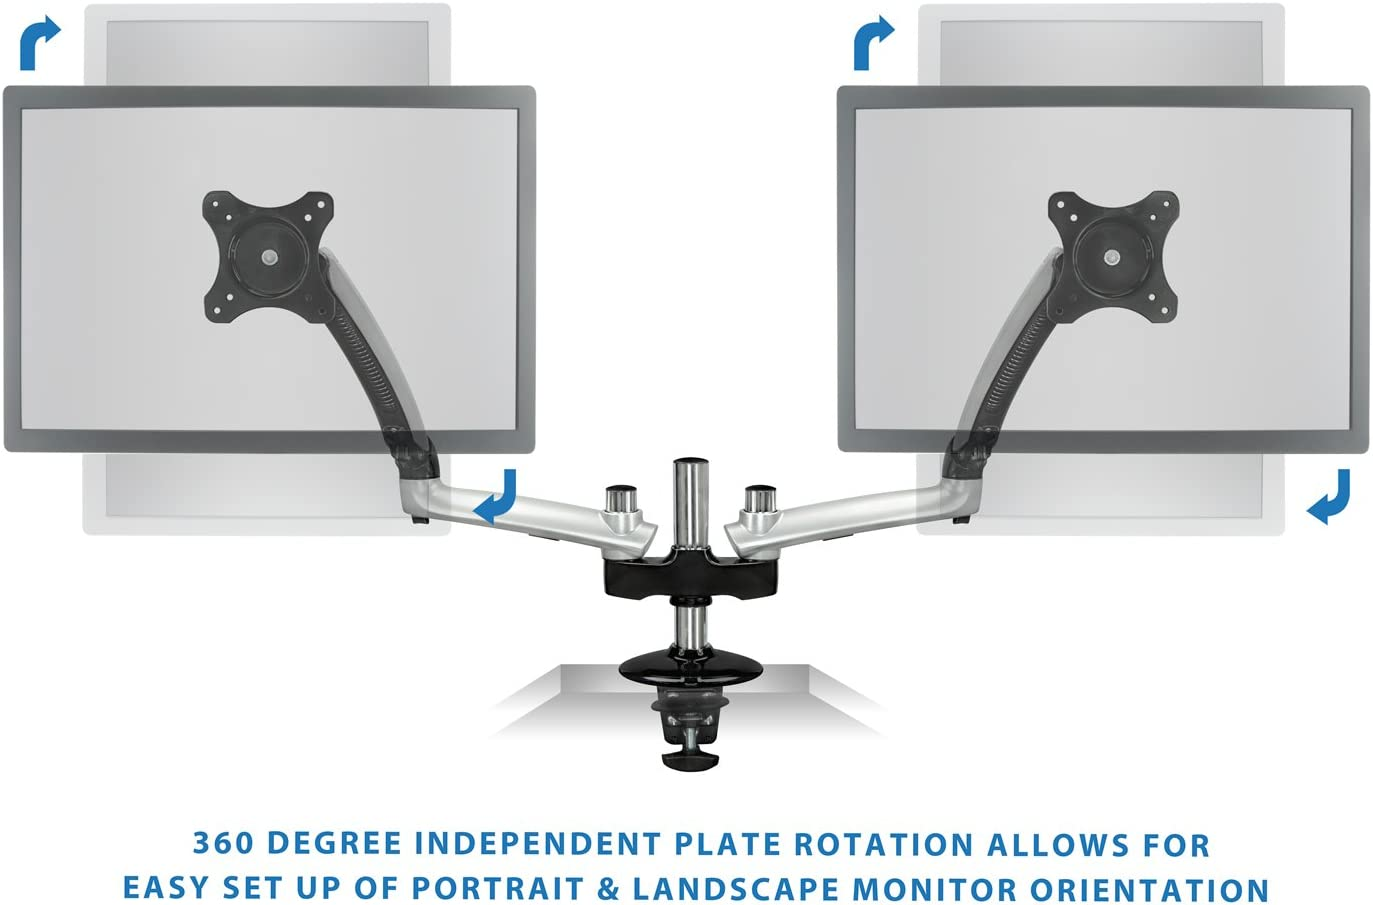 Mount-It! Dual Monitor Arm Premium Gas Spring Desk Mount with Height Adjustment, Fits Up to 27 Inch Computer Monitors